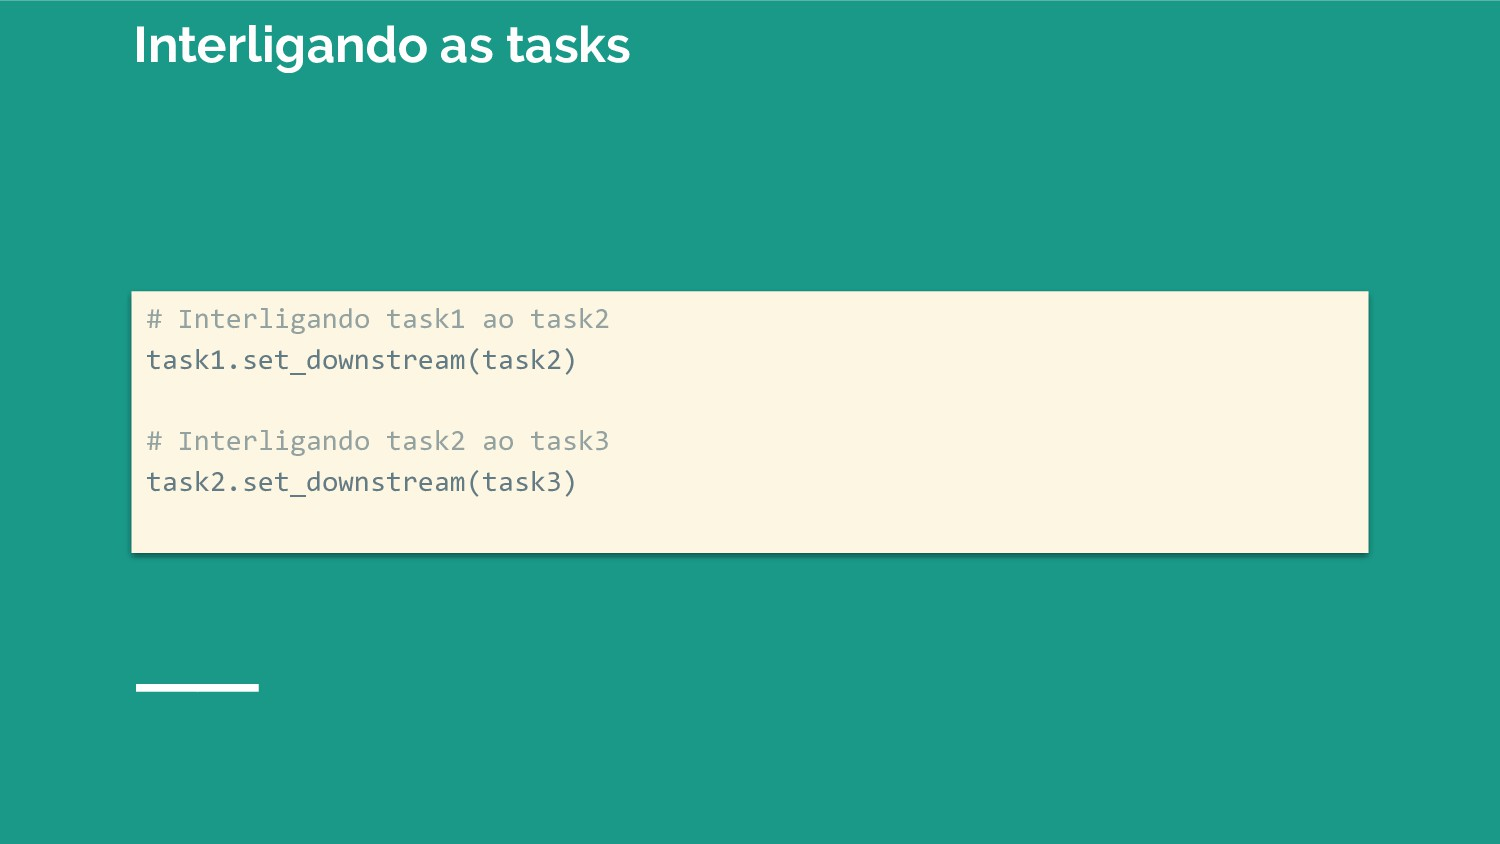 # Interligando task1 ao task2 task1.set_downstr...